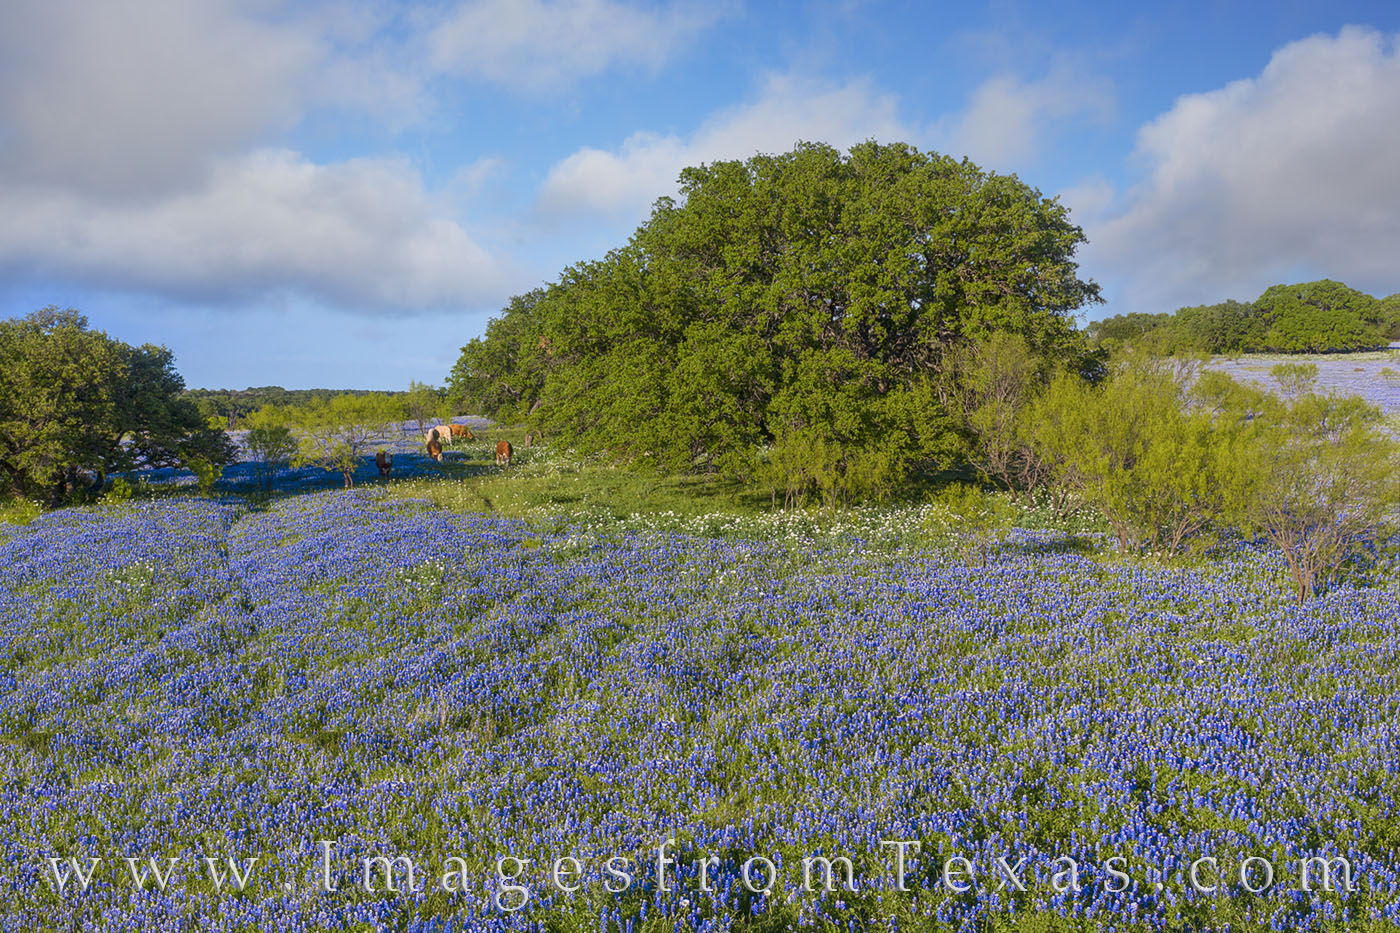 drone, bluebonnets, aerial, wildflowers, hill country, aerial, cows, spring, afternoon, blue, 107, photo